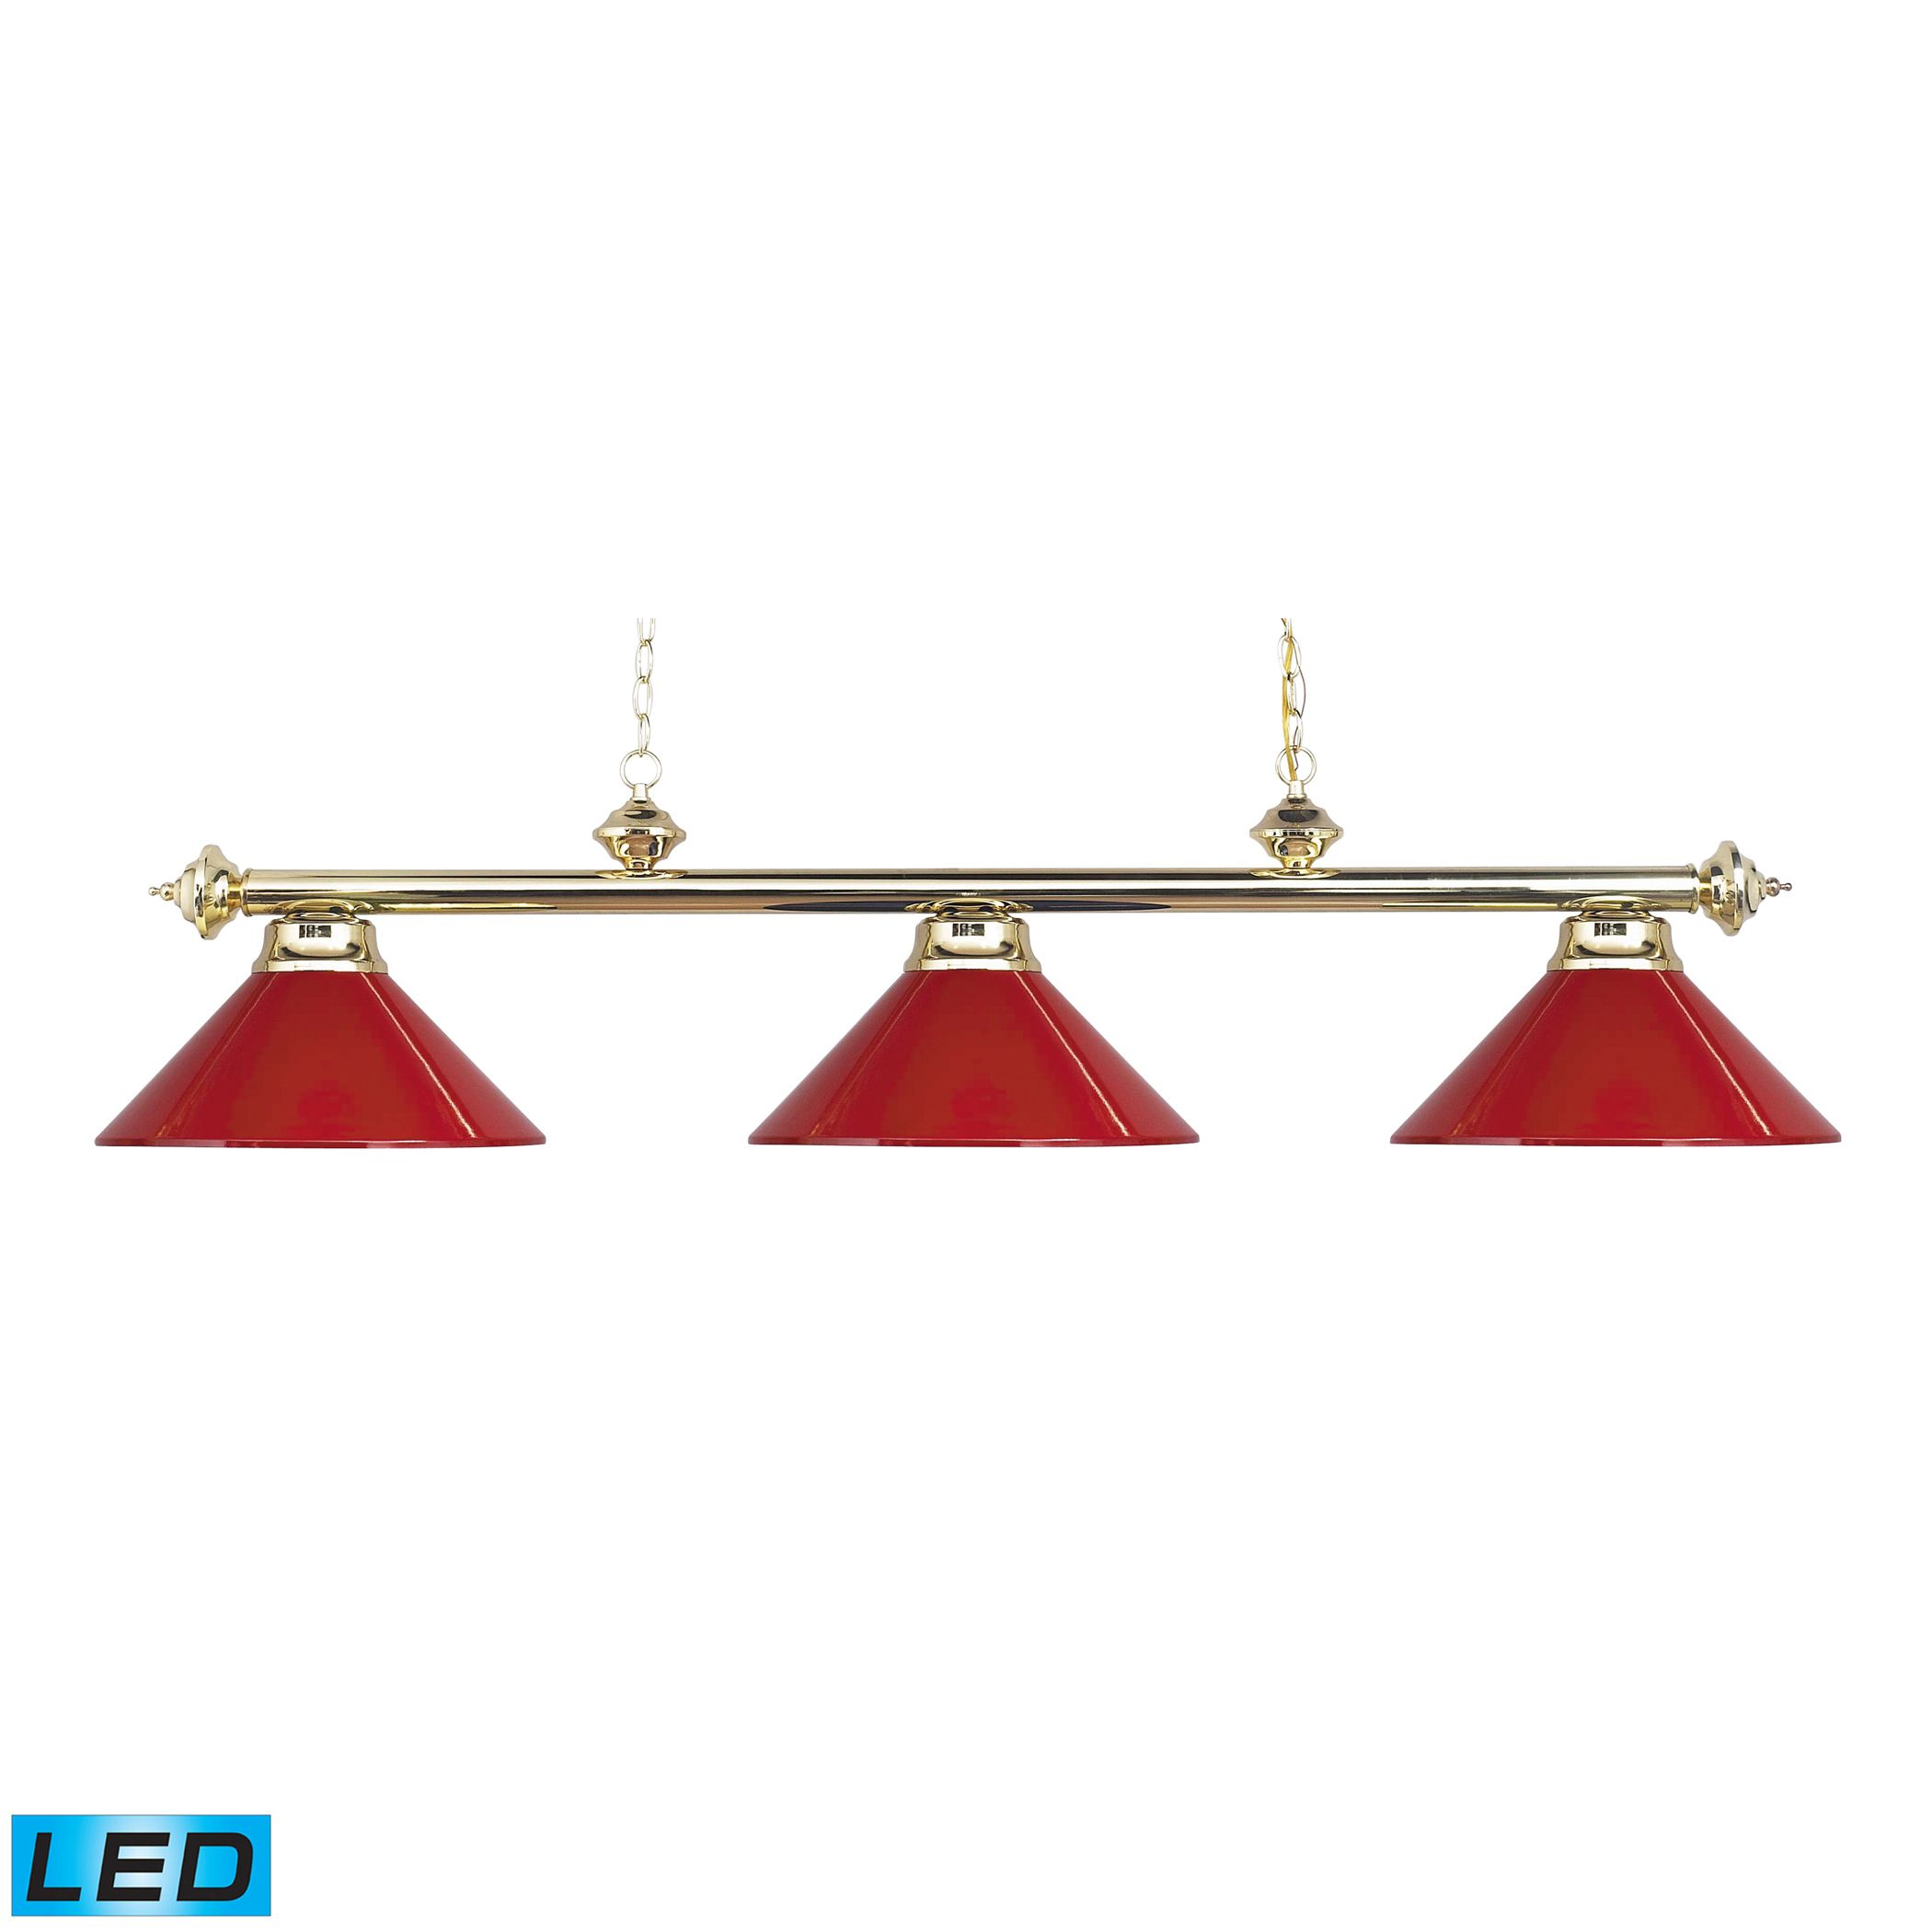 Casual Traditions LED 3-Light Billiard/Island in Polished Brass with Red Metal Shades